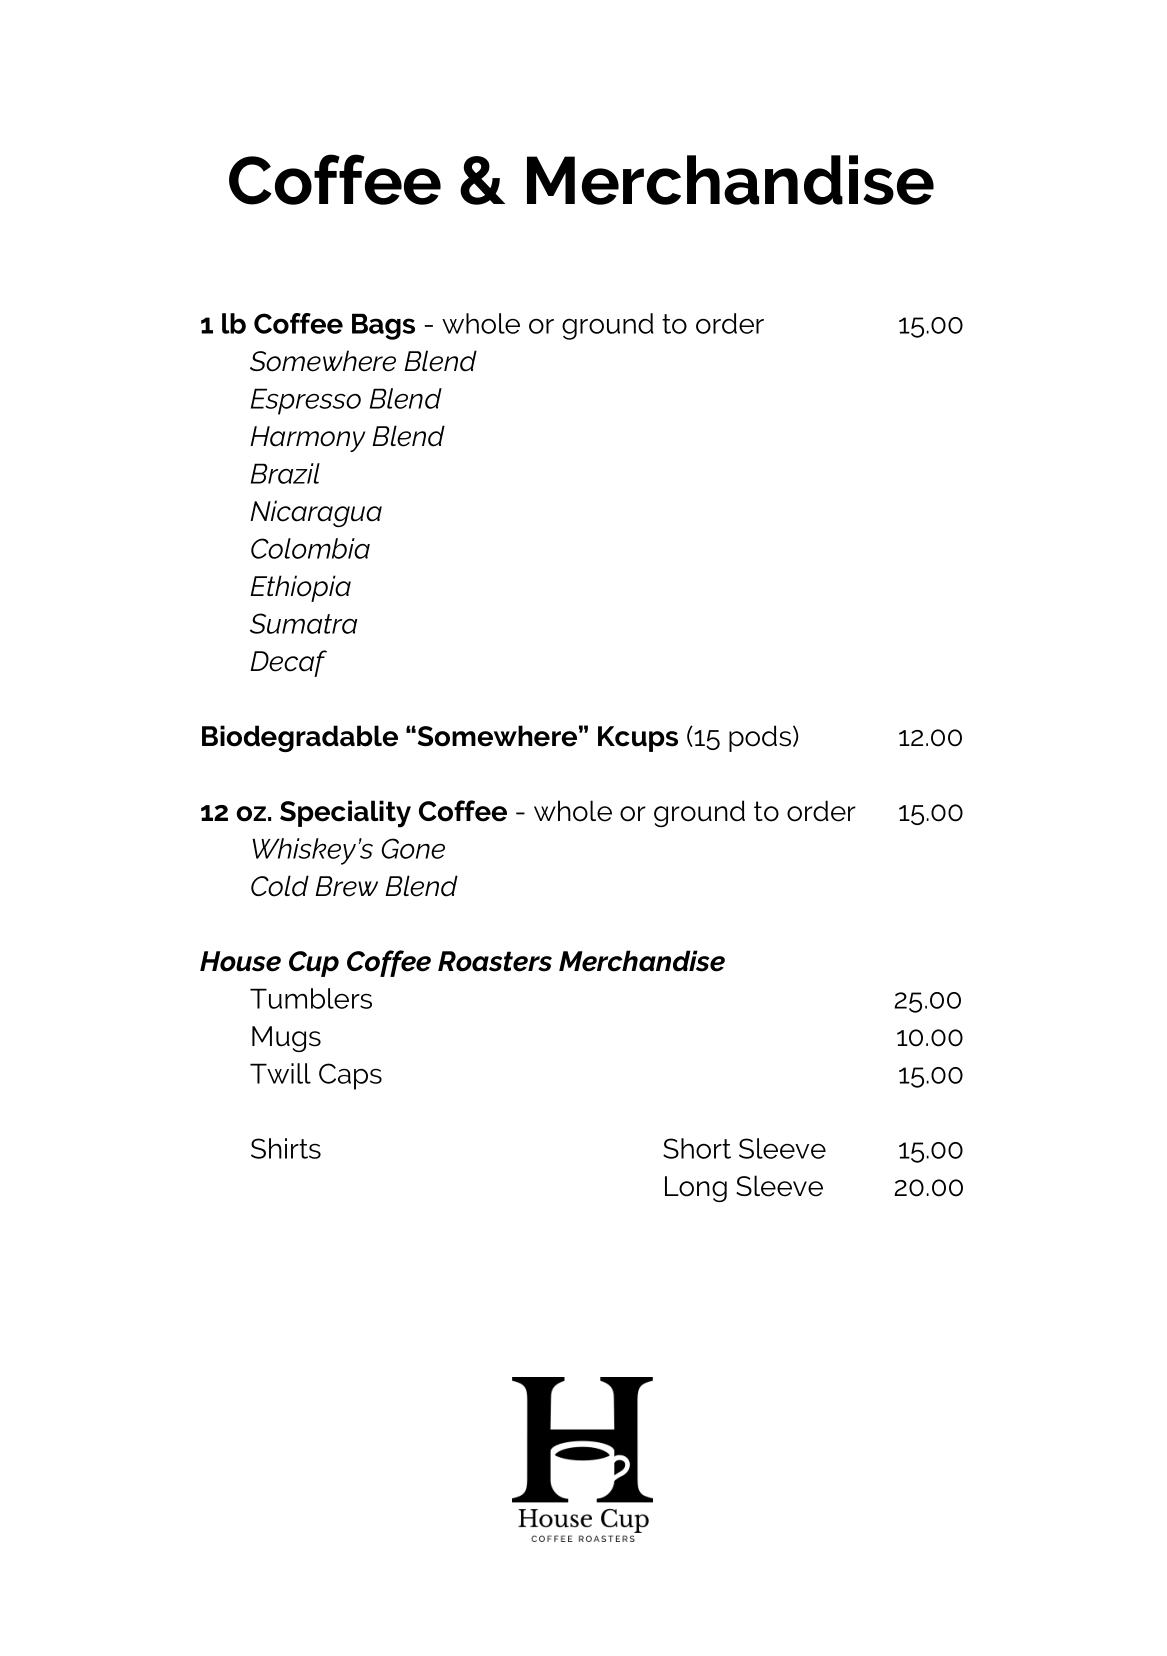 Coffee and Merchandise